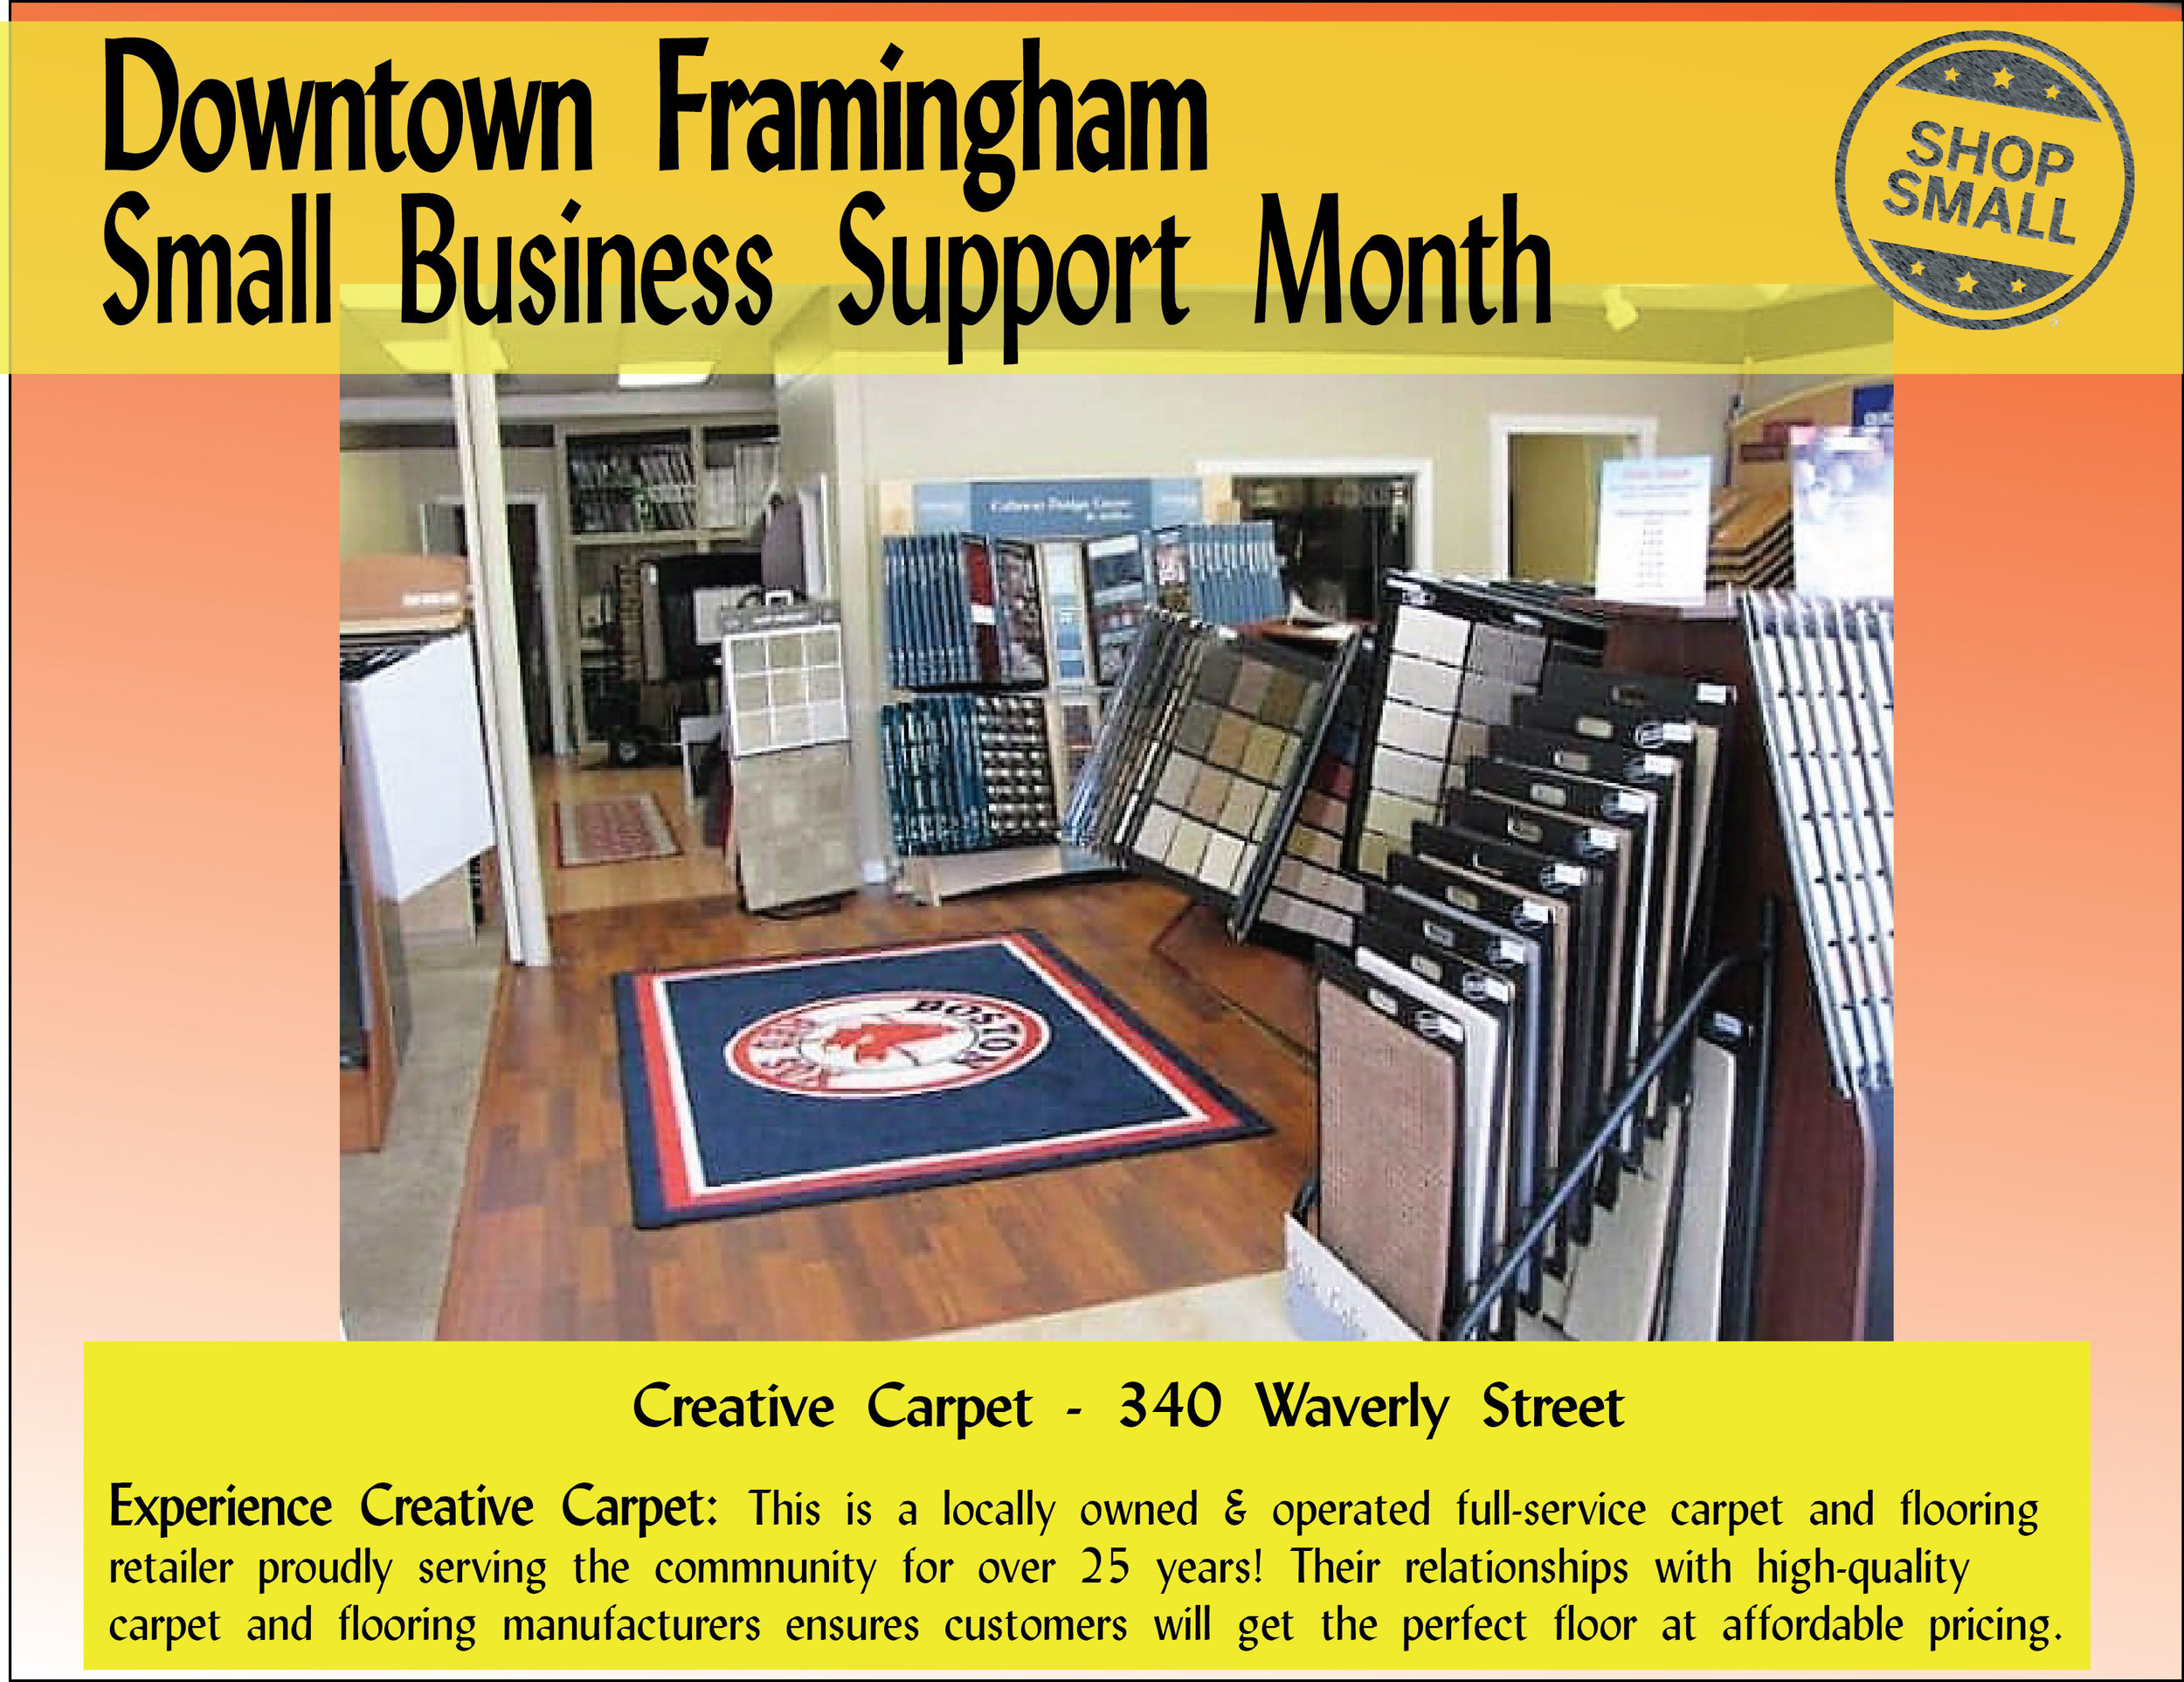 """It's Day 7 of Small Business Support Month!  Reason #7 to shop small: """"Local businesses make more local purchases requiring less transportation and usually set up shop in town centers rather than on the fringe. This generally means contributing less to sprawl, congestion, habitat loss, resource depletion and pollution.""""  Today we're spot-lighting  Creative Carpet , voted the best regional carpet store through  Wicked Local Favorites ! Check them out today!"""